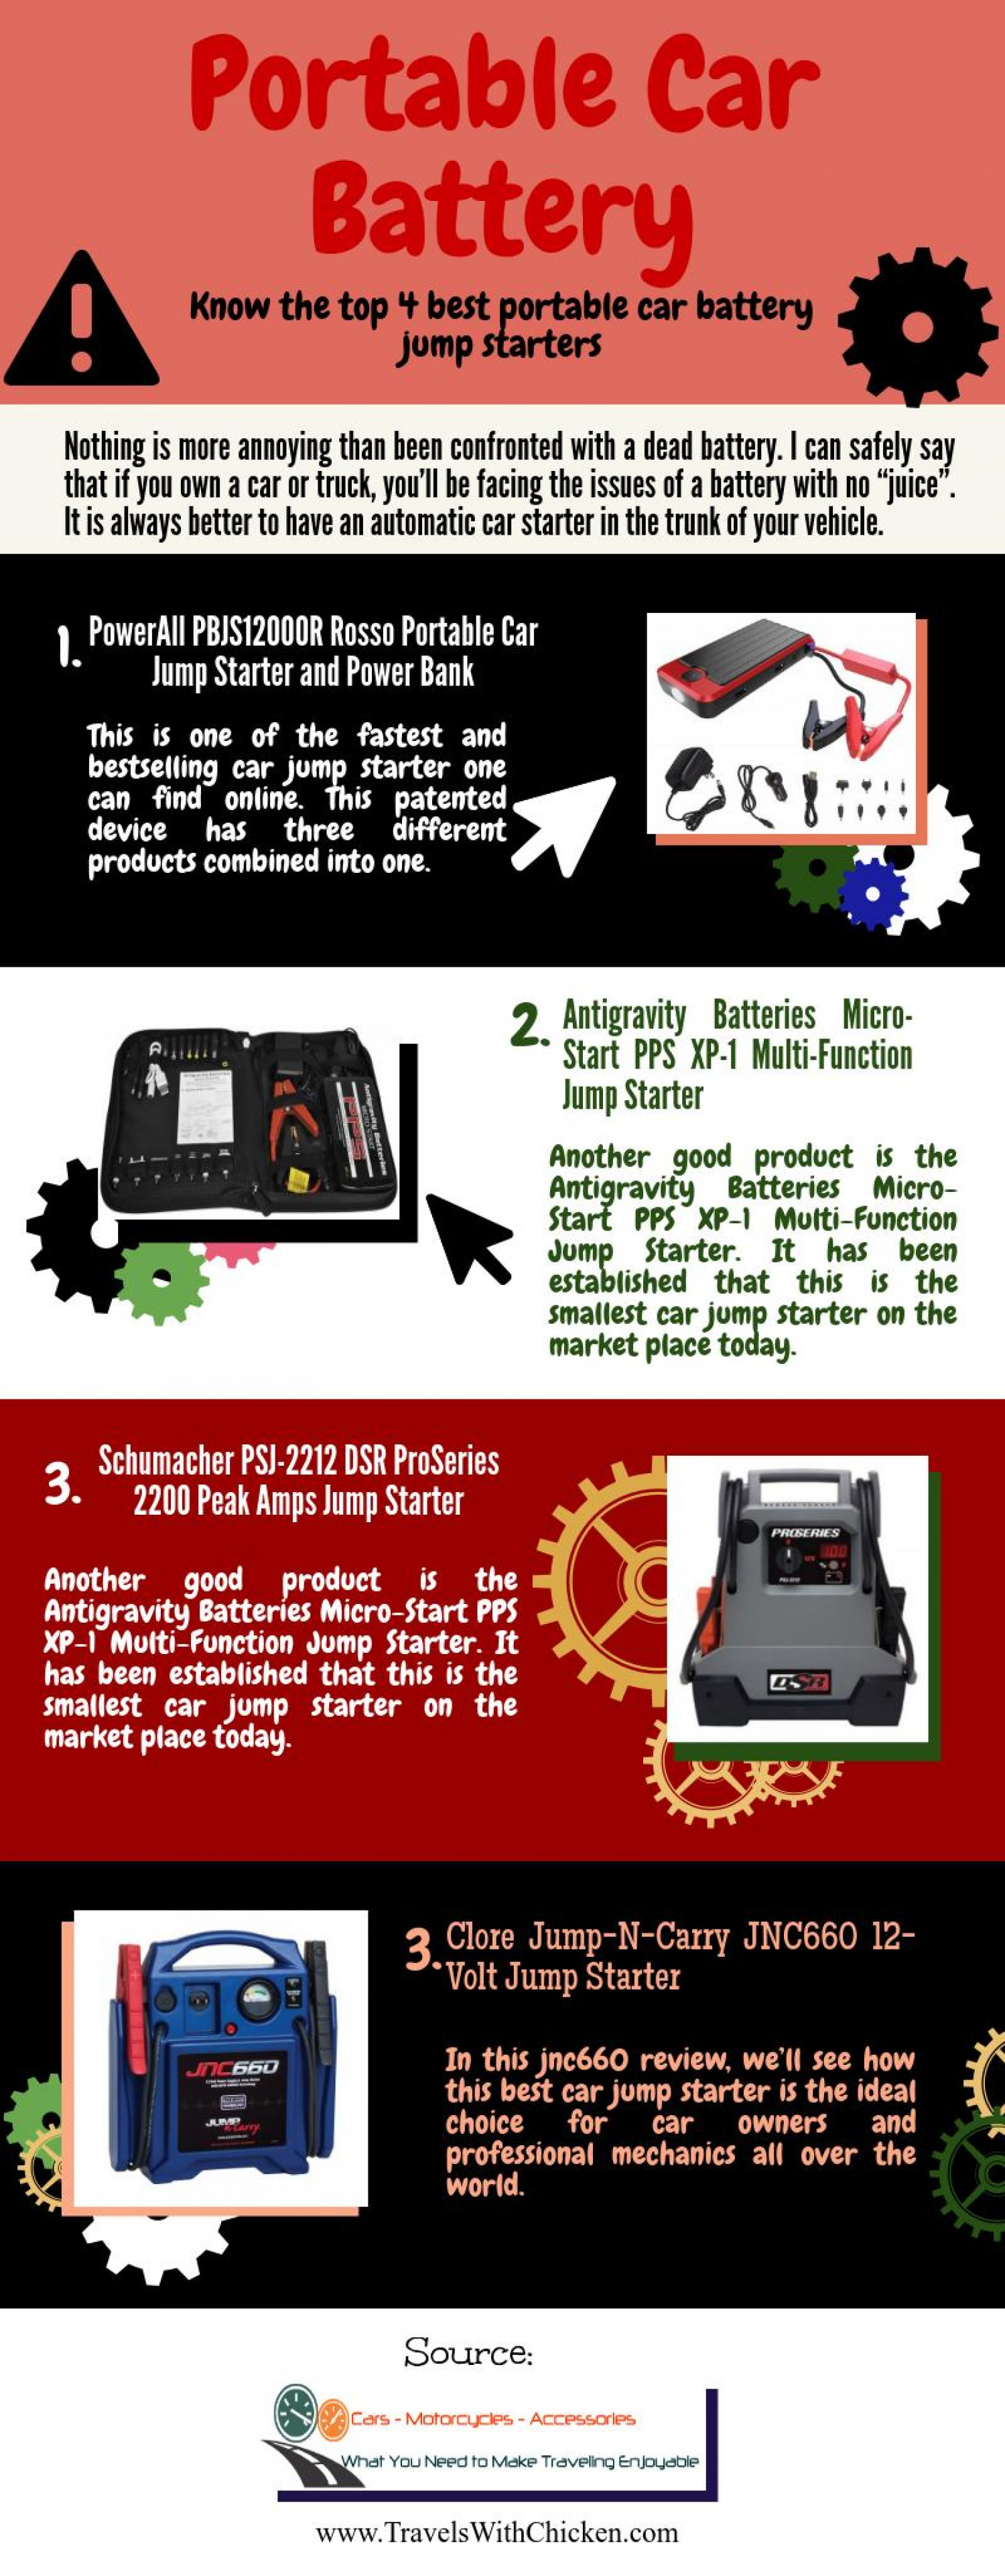 Portable Car Battery Know The Top 4 Best Portable Car Battery Jump